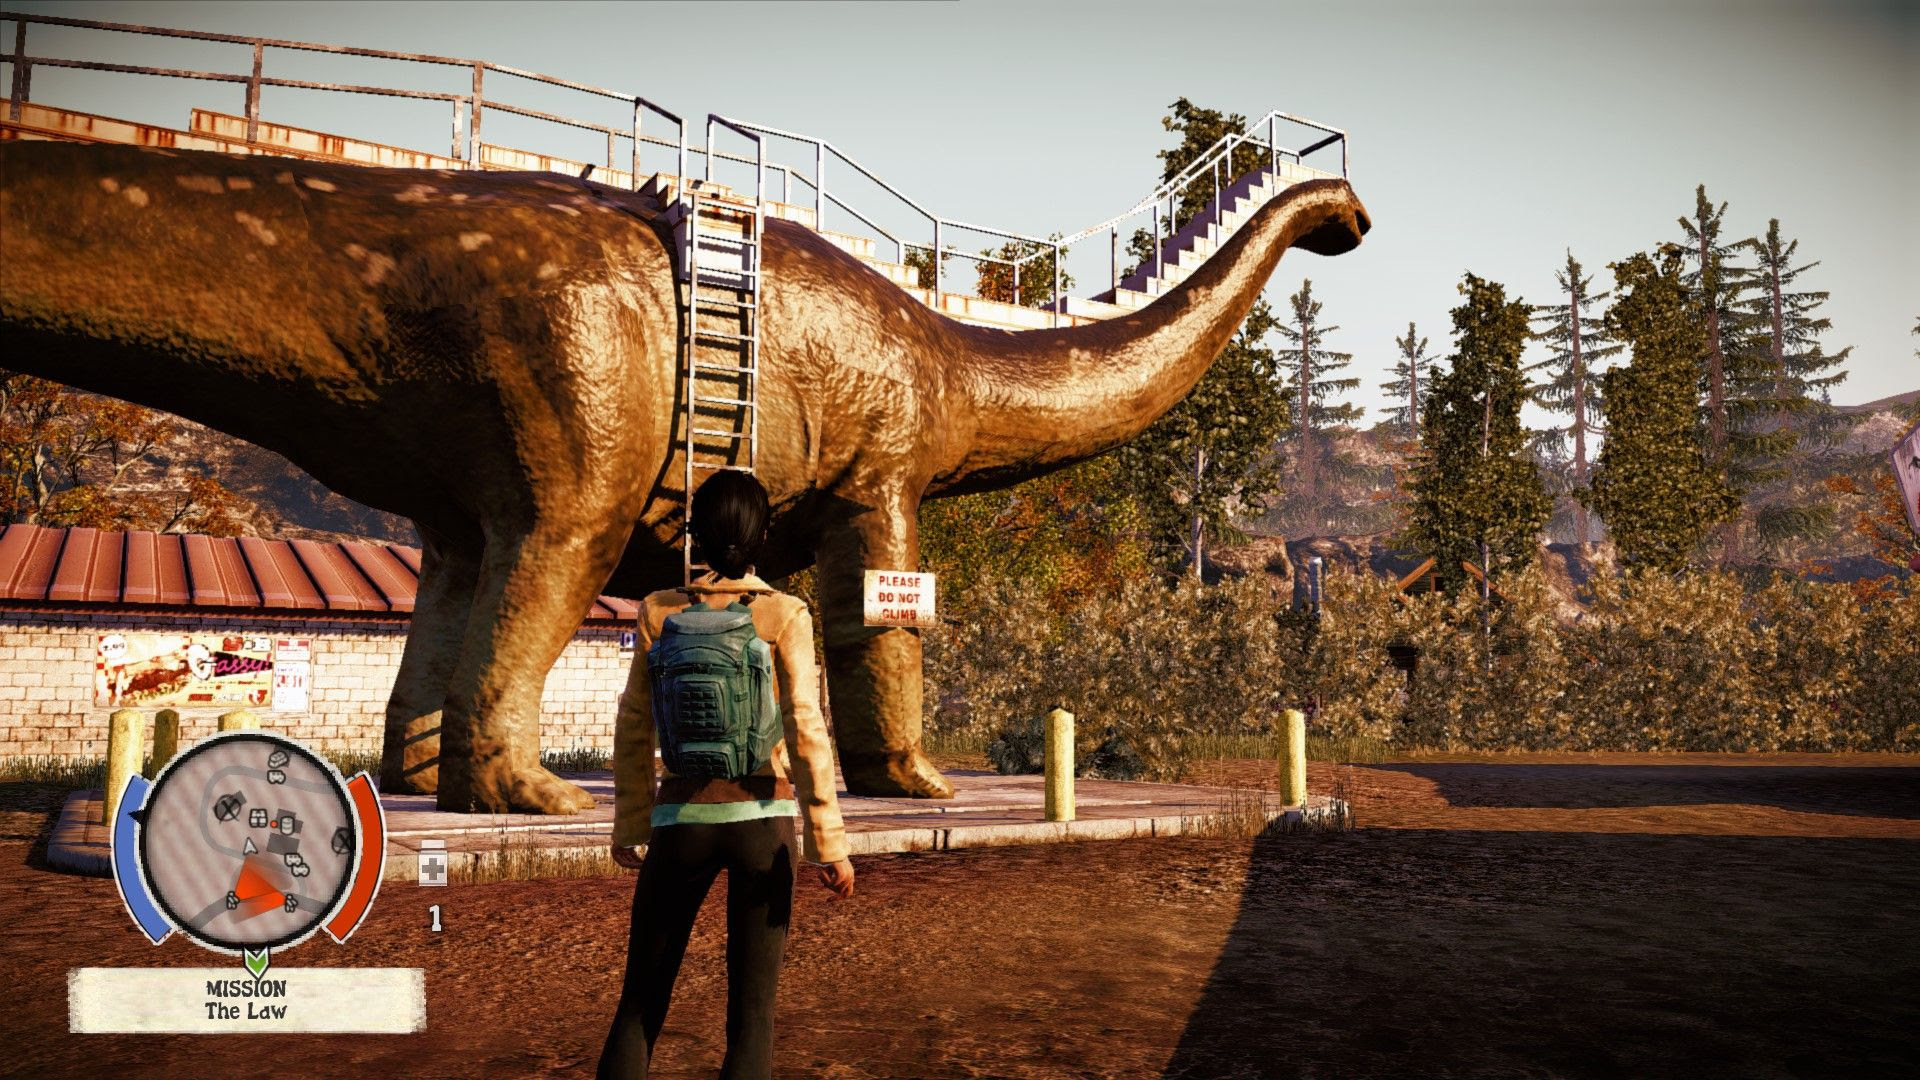 State Of Decay Pc Screenshots Image 13841 New Game